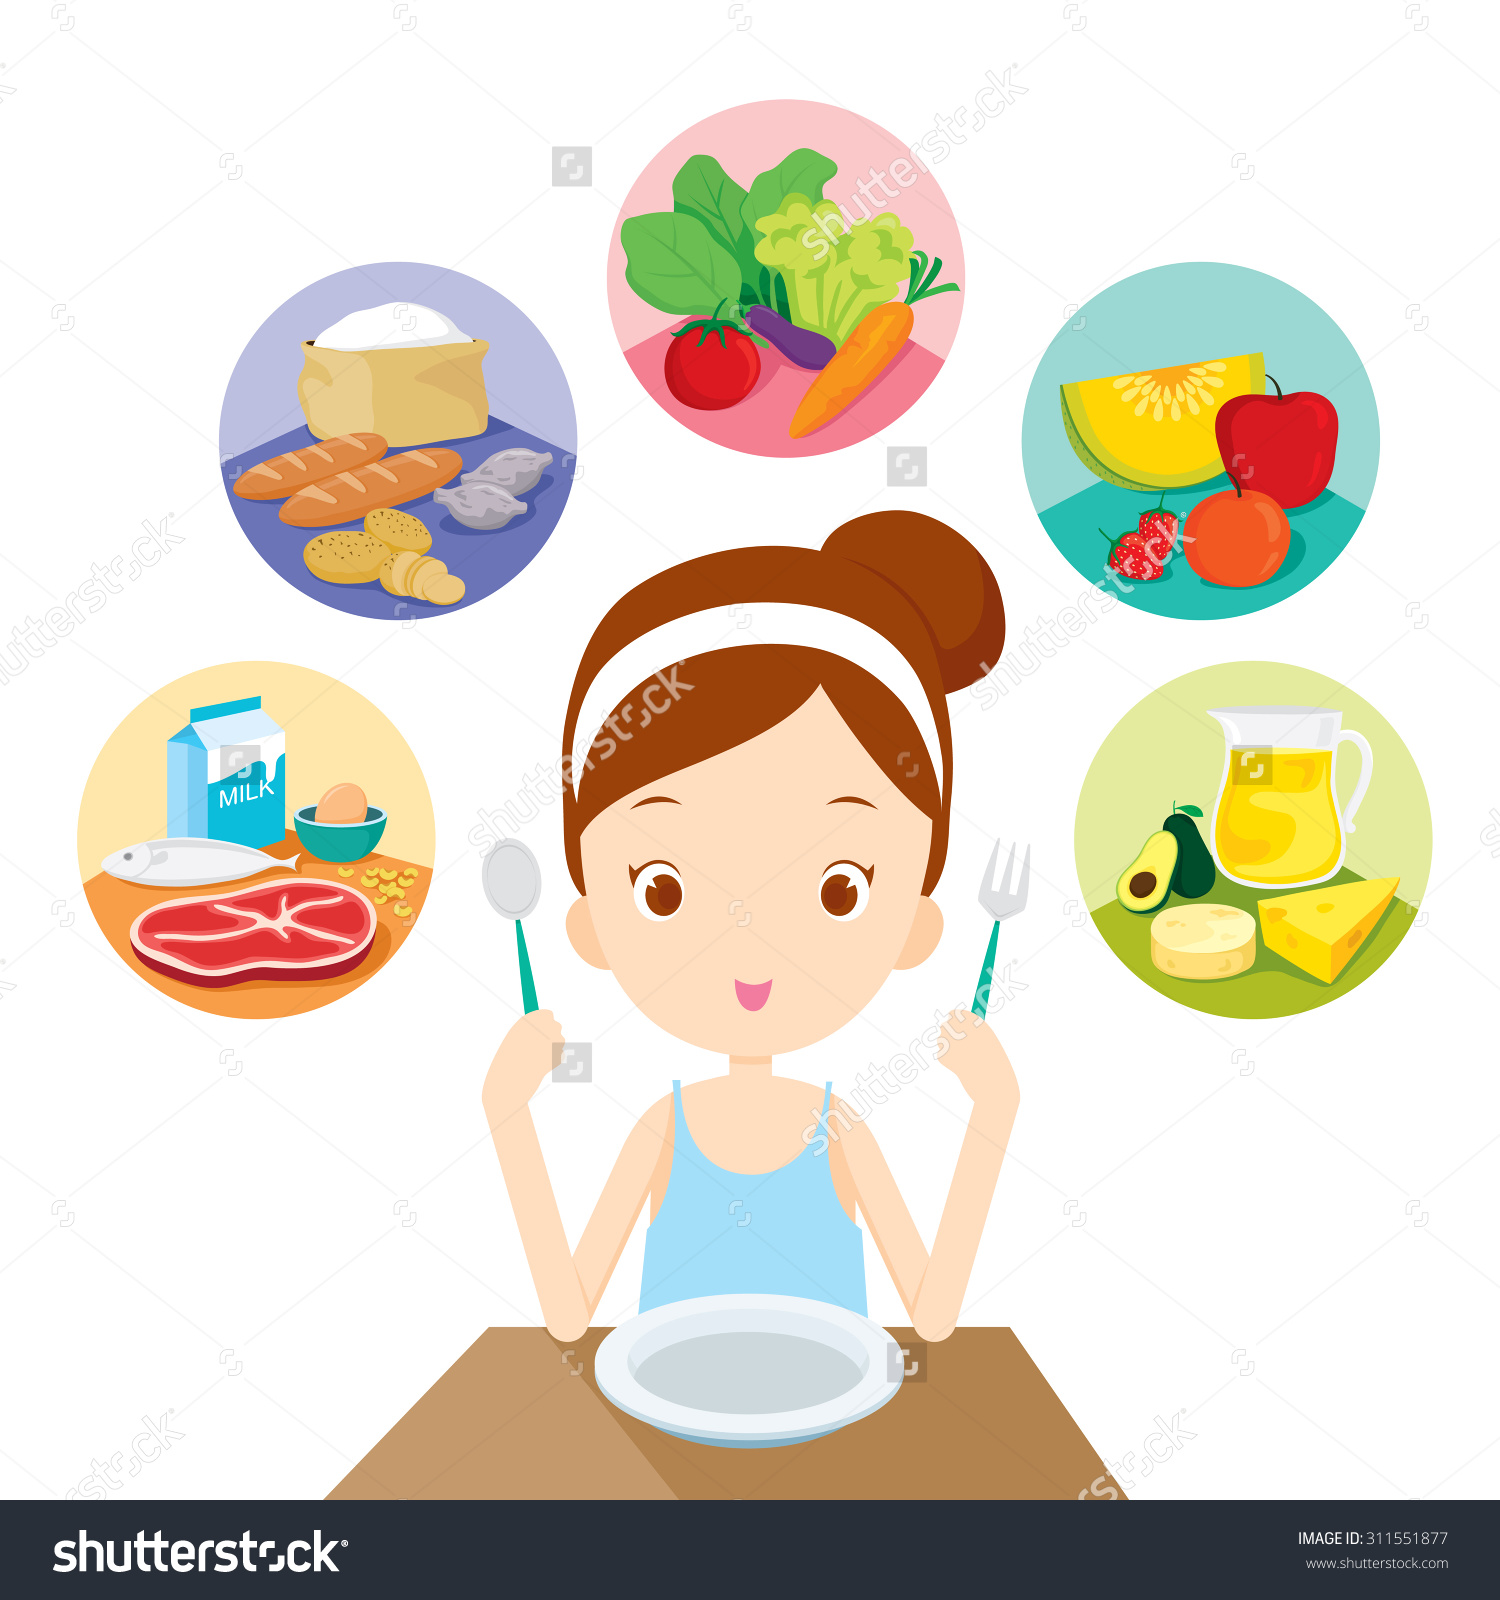 Eating Healthy Food Clipart 6-eating healthy food clipart 6-6